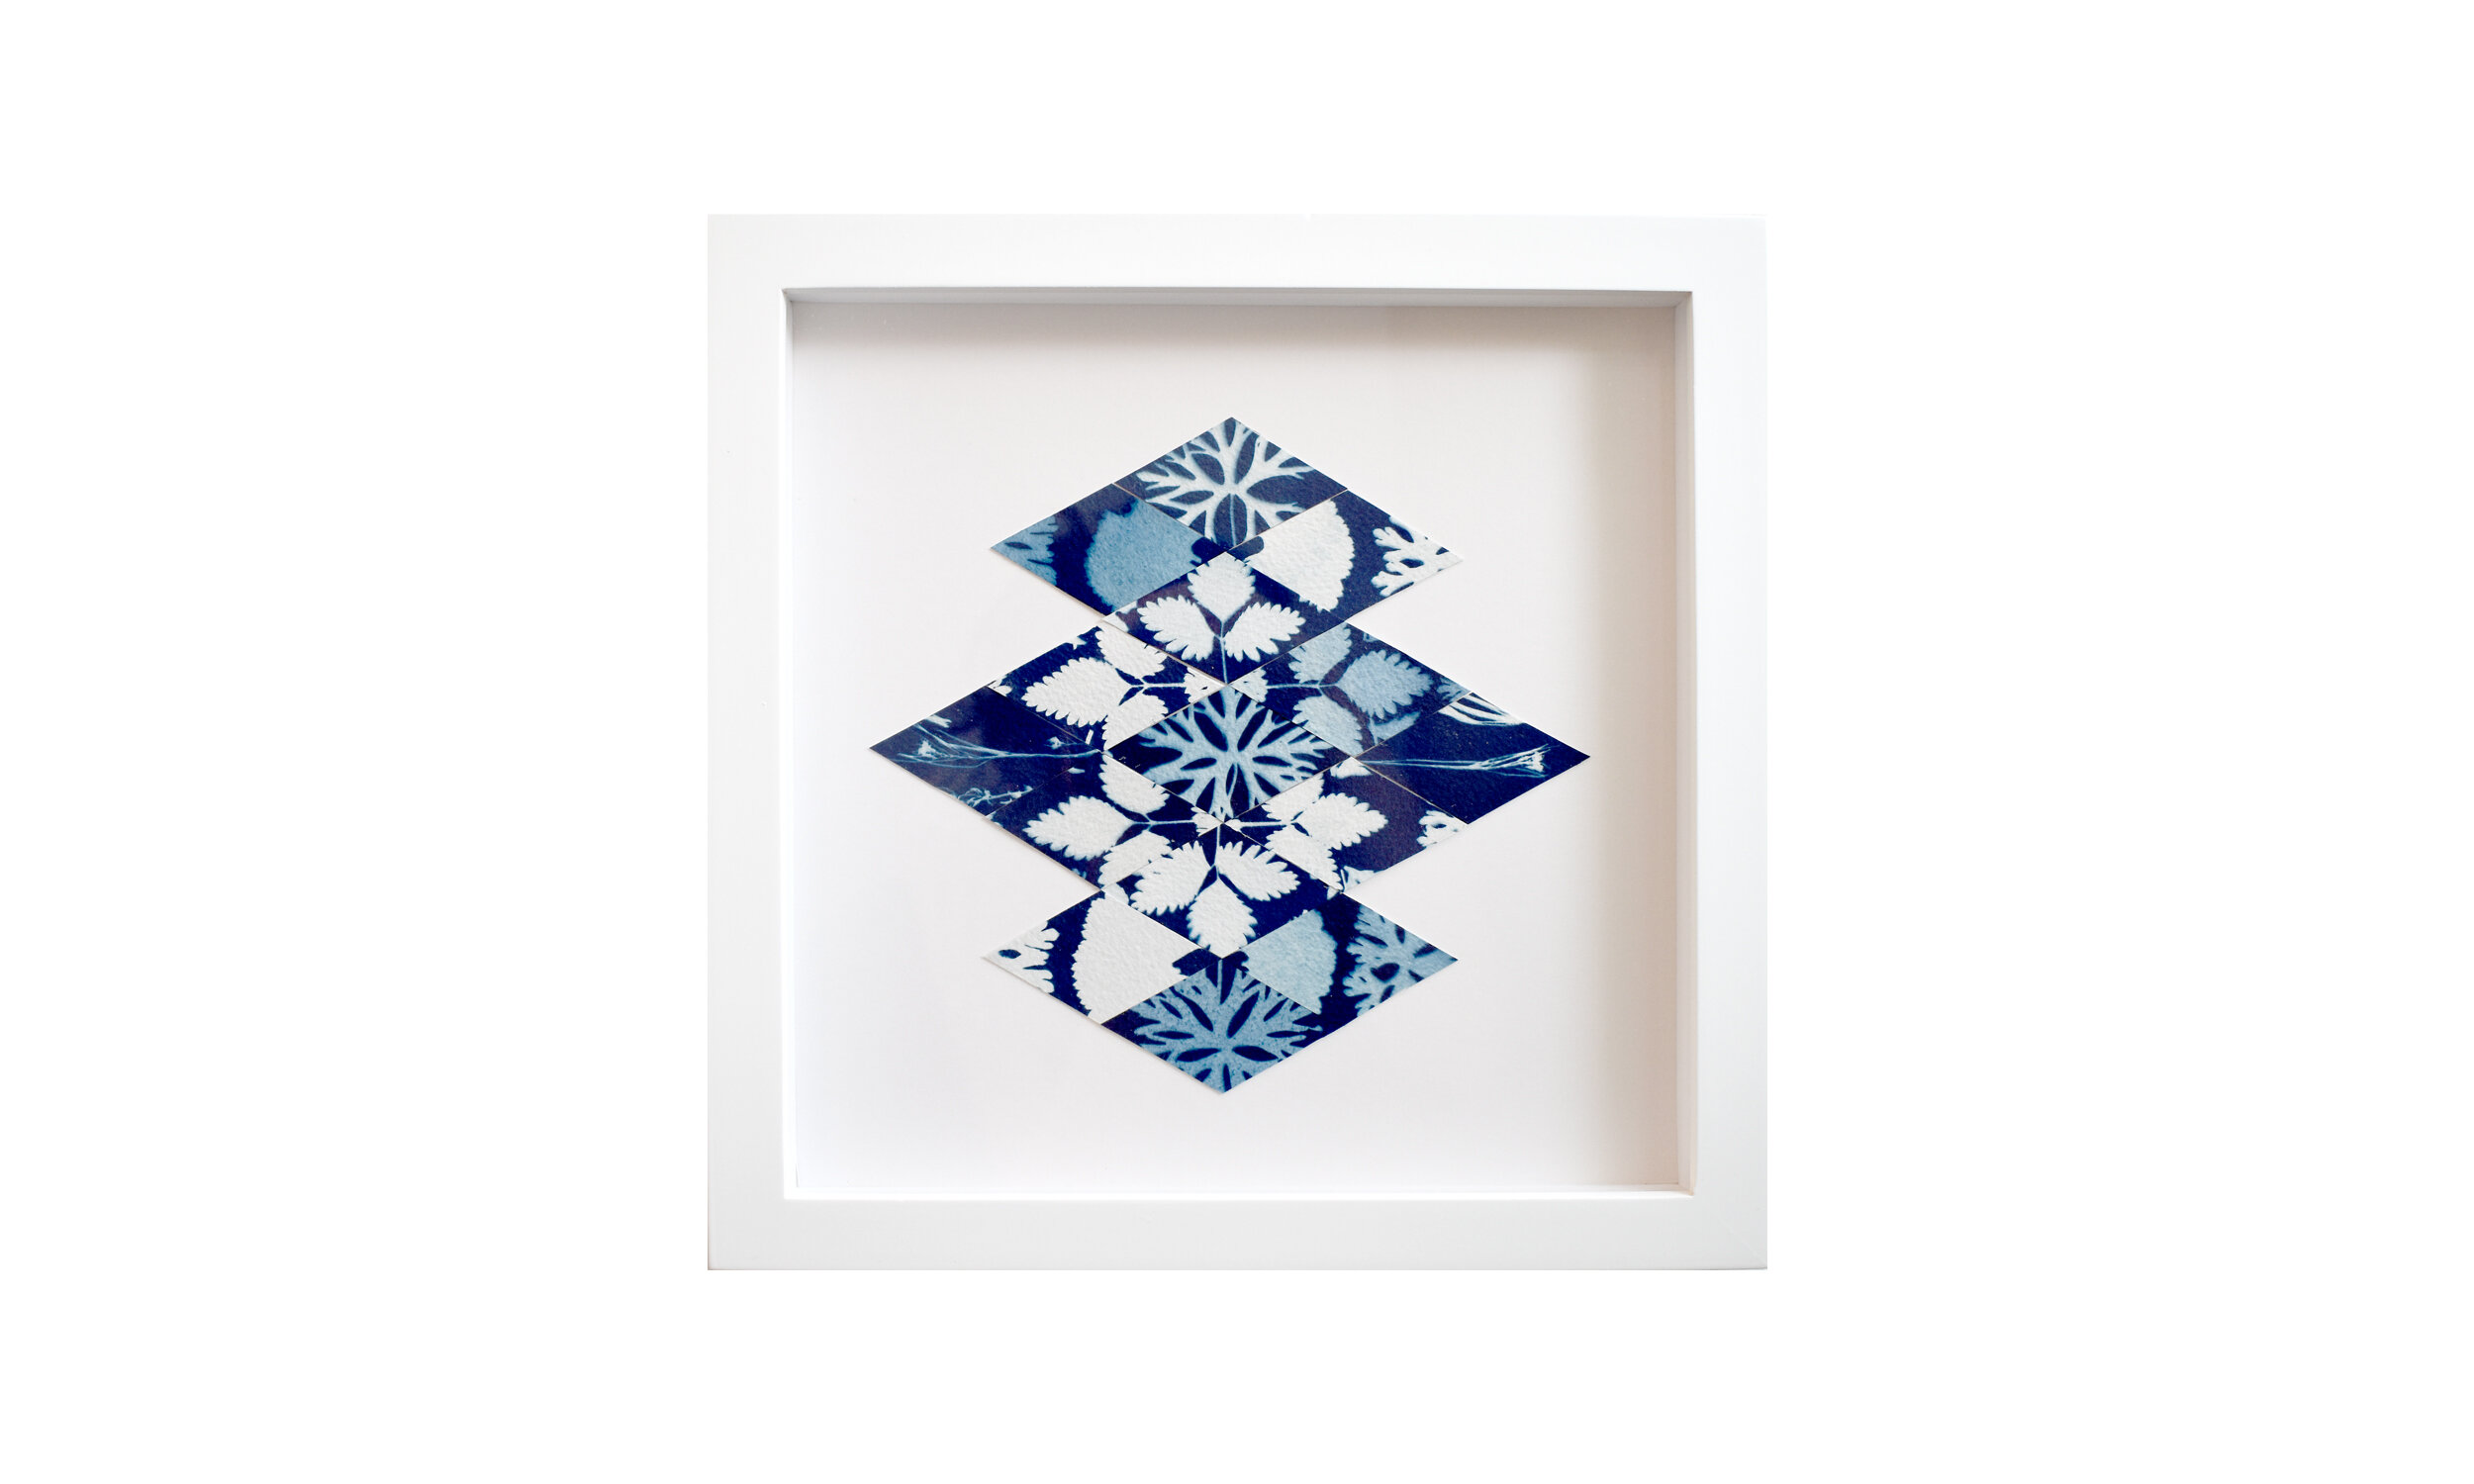 """Reflection,  cyanotype print collage, 13.25"""" x 13.25"""", framed $ 850    Contact us for purchase"""